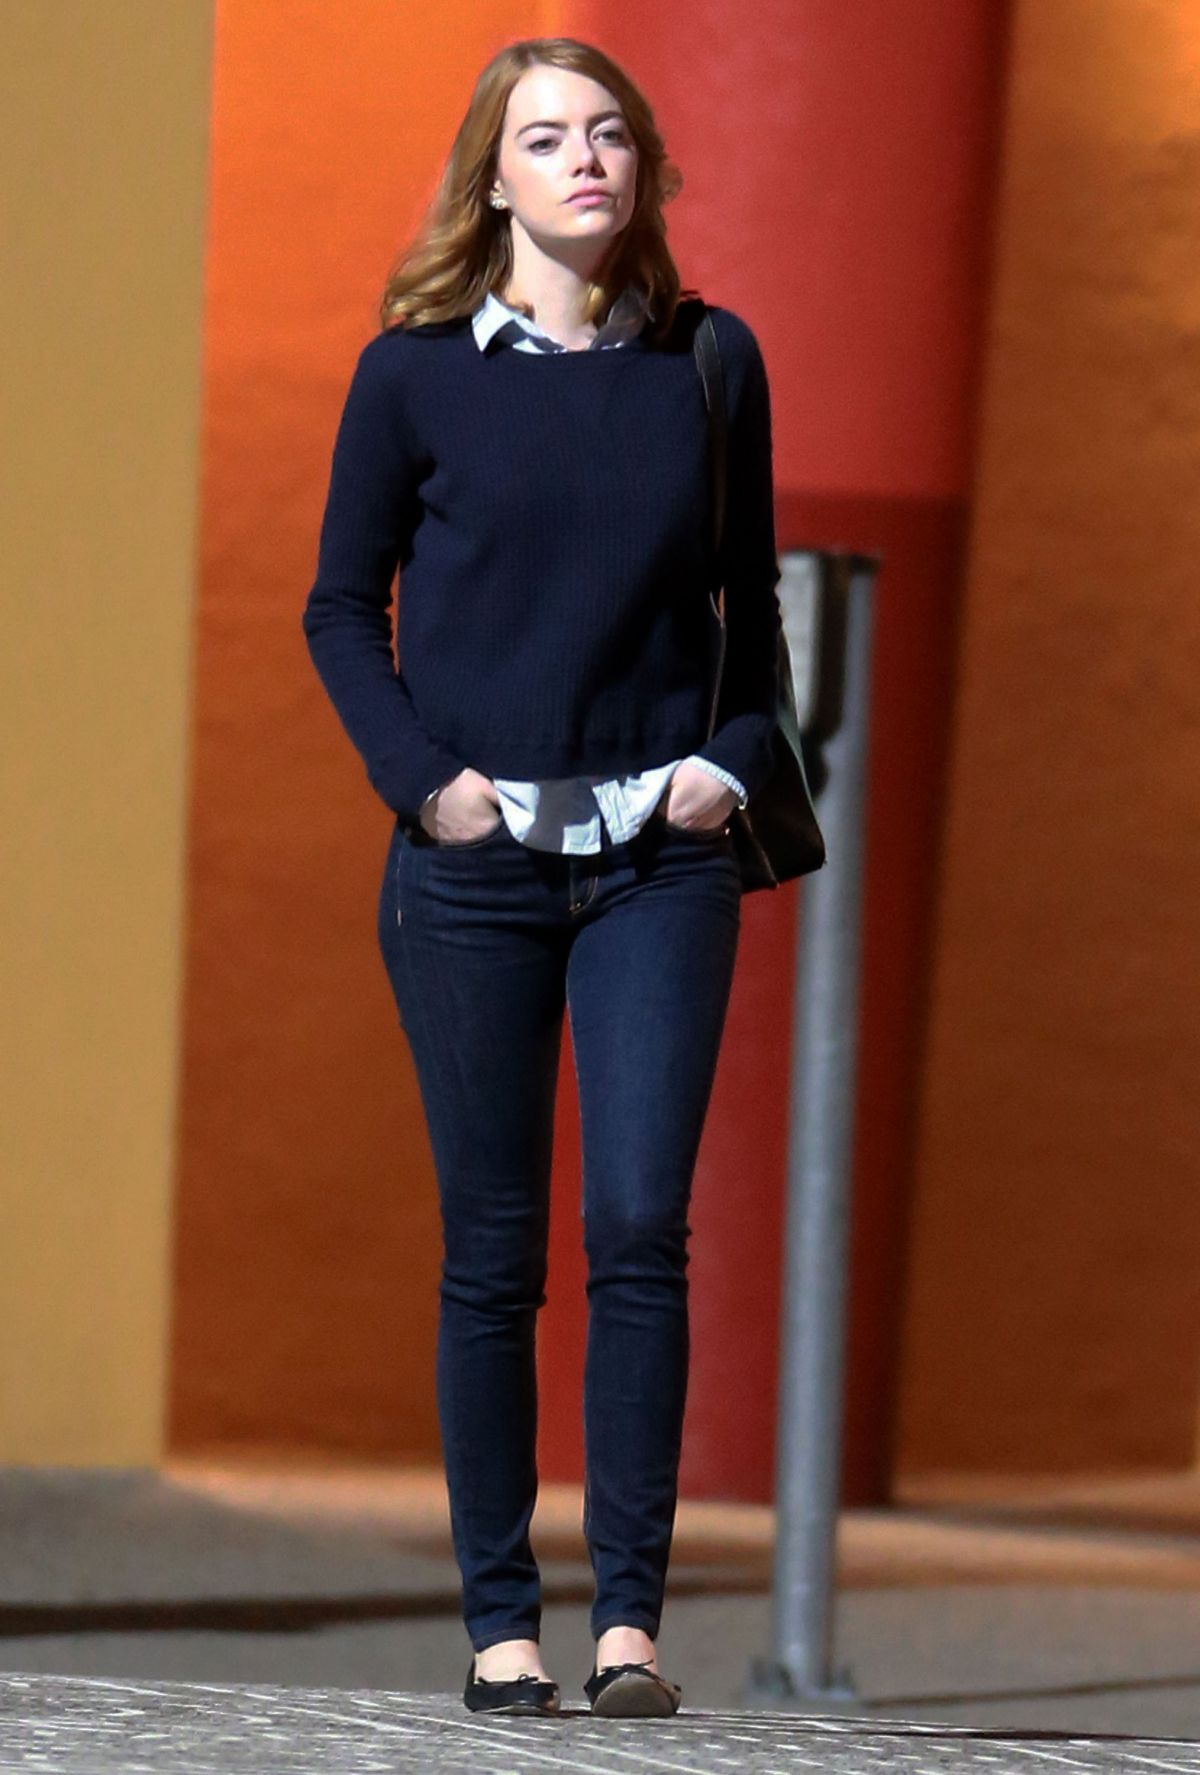 http://www.hawtcelebs.com/wp-content/uploads/2015/10/emma-stone-at-la-la-land-set-in-los-angeles-10-07-2015_7.jpg